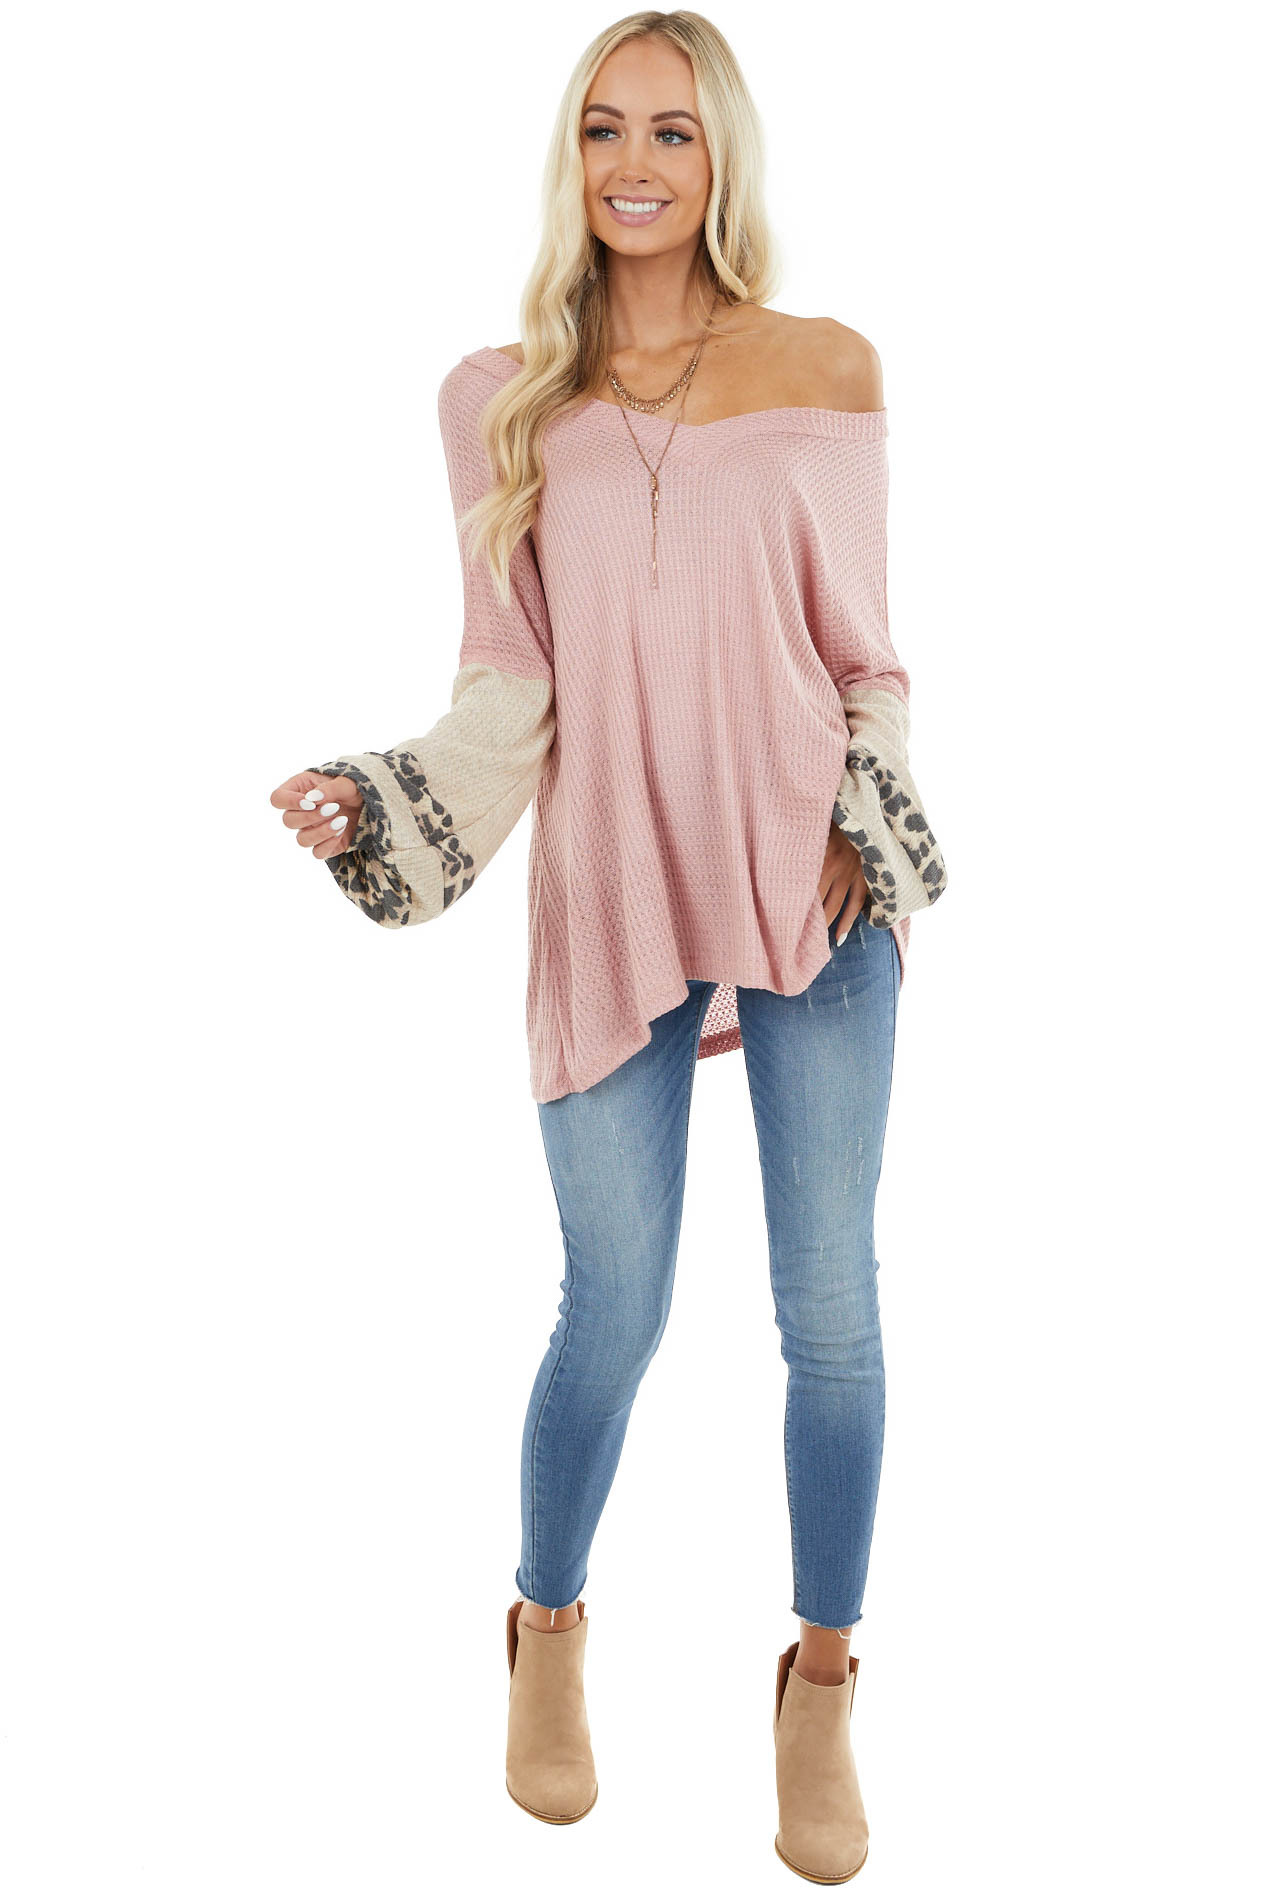 Blush Waffle Knit Top with Oatmeal and Leopard Print Sleeves